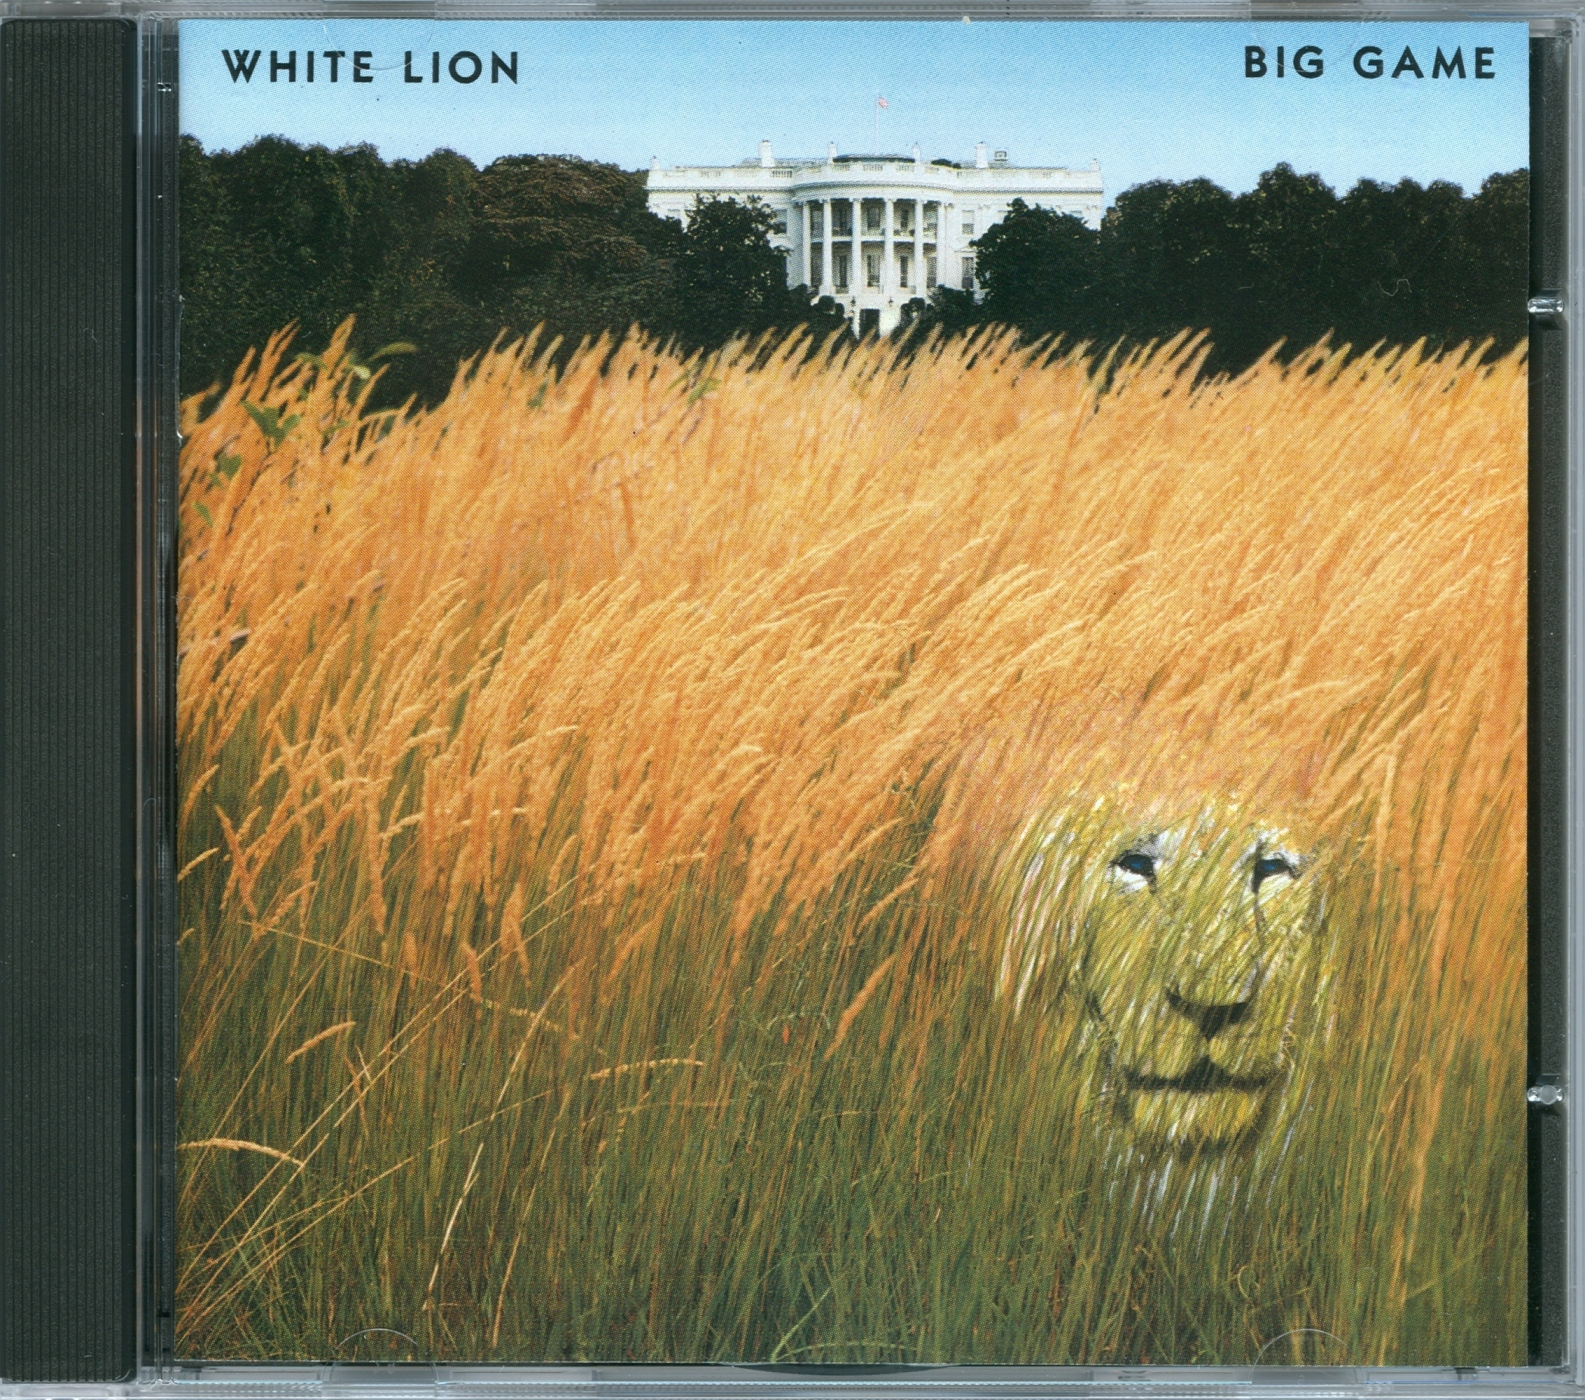 White Lion Big Game Discography